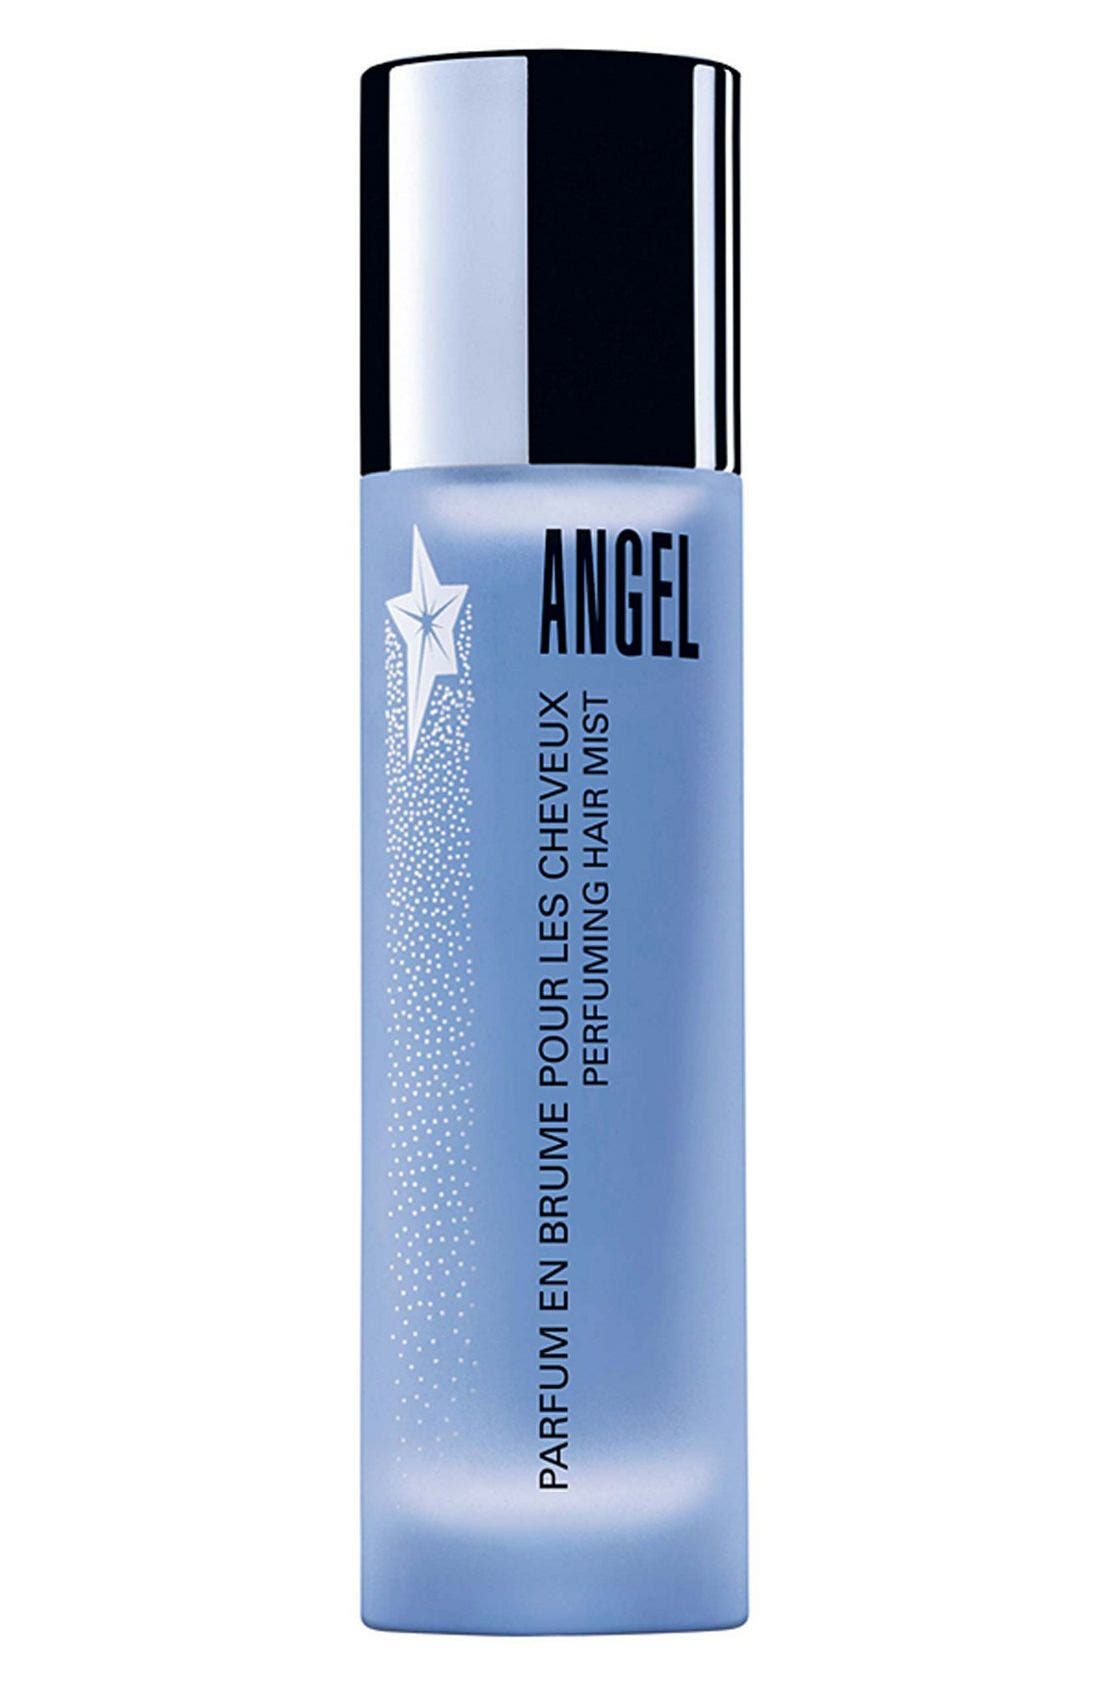 Angel By Mugler Perfuming Hair Mist